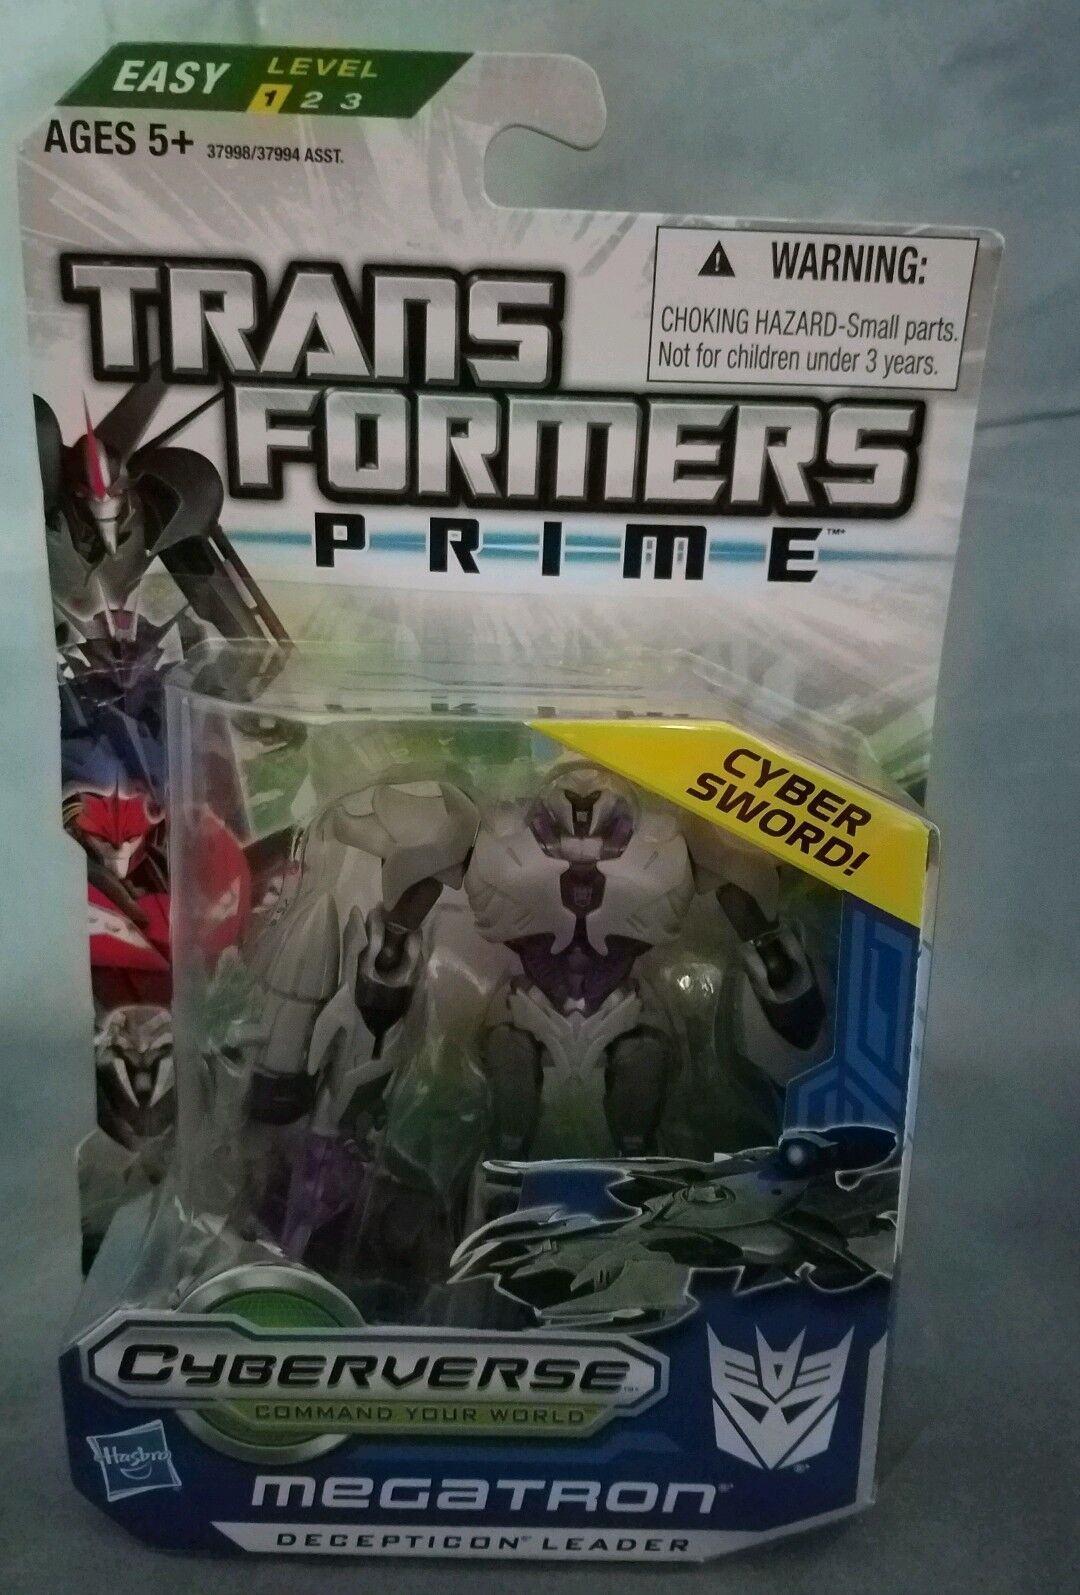 Transformers Prime Robots in Disguise Cyberverse Commander Class Action Figure